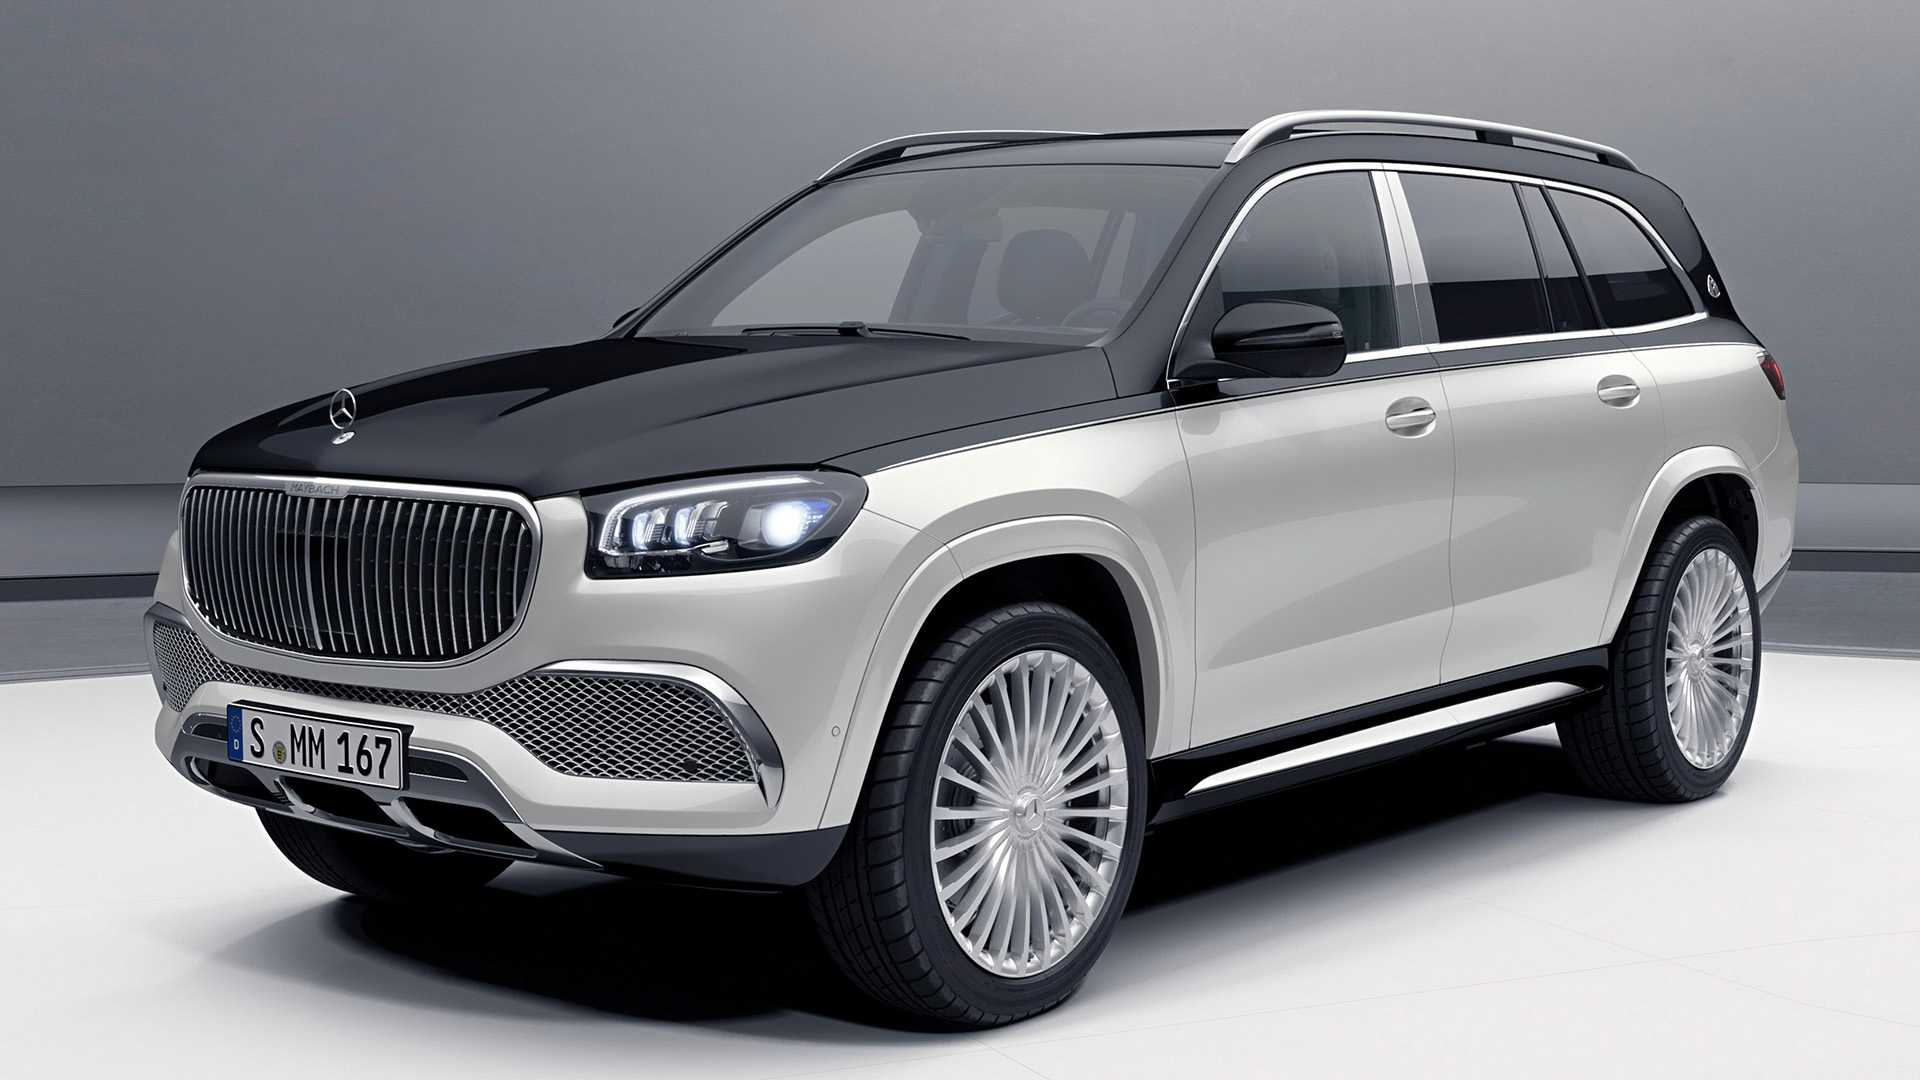 Mercedes Maybach Gls Revealed As Opulent Suv With 4 Or 5 Seats